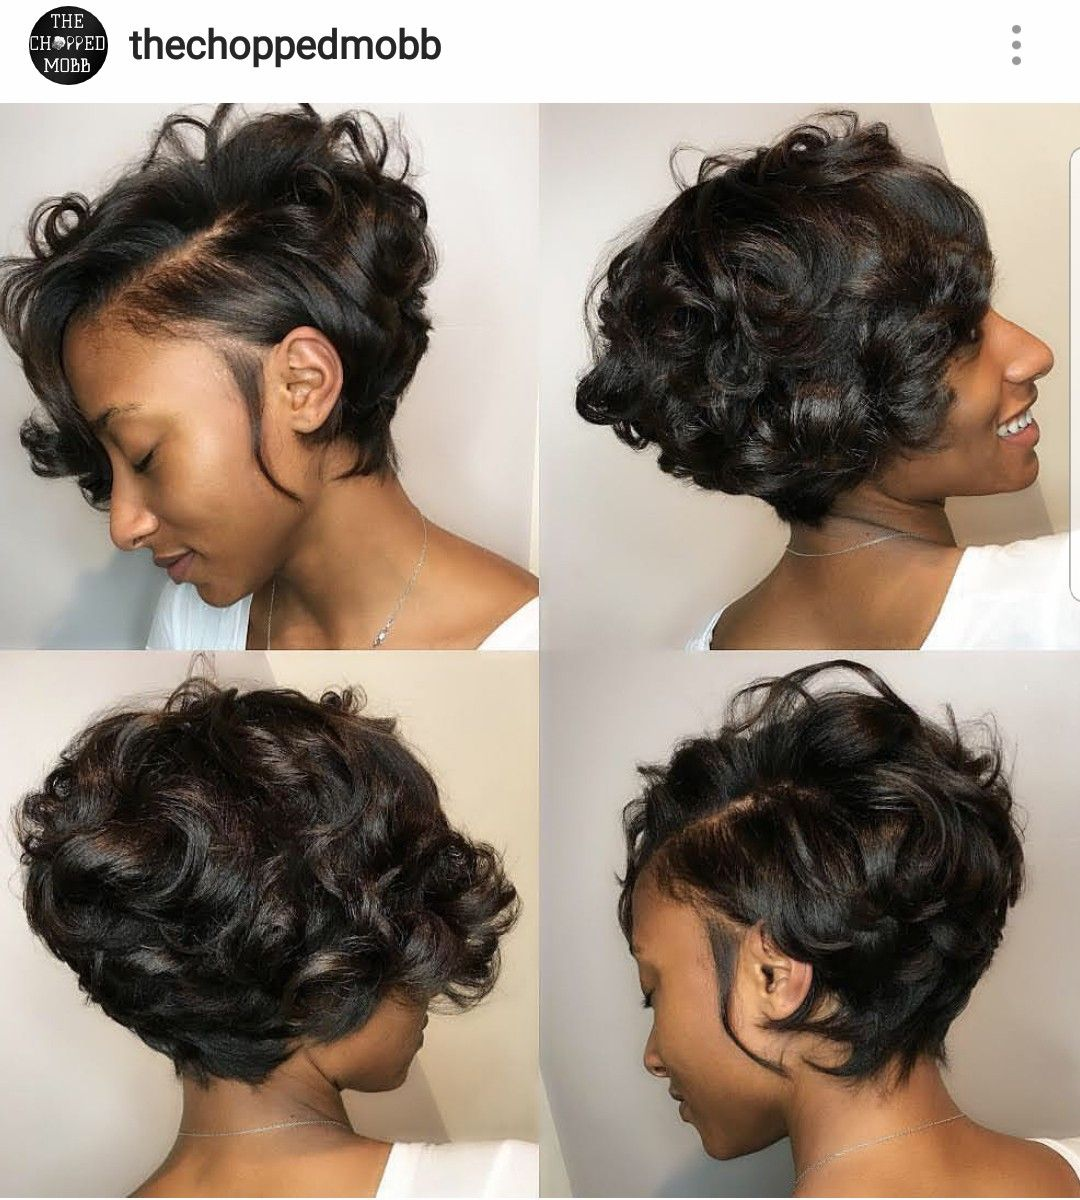 Short Relax Hair Styles Natural Hair Styles Short Wigs Short Hair Styles